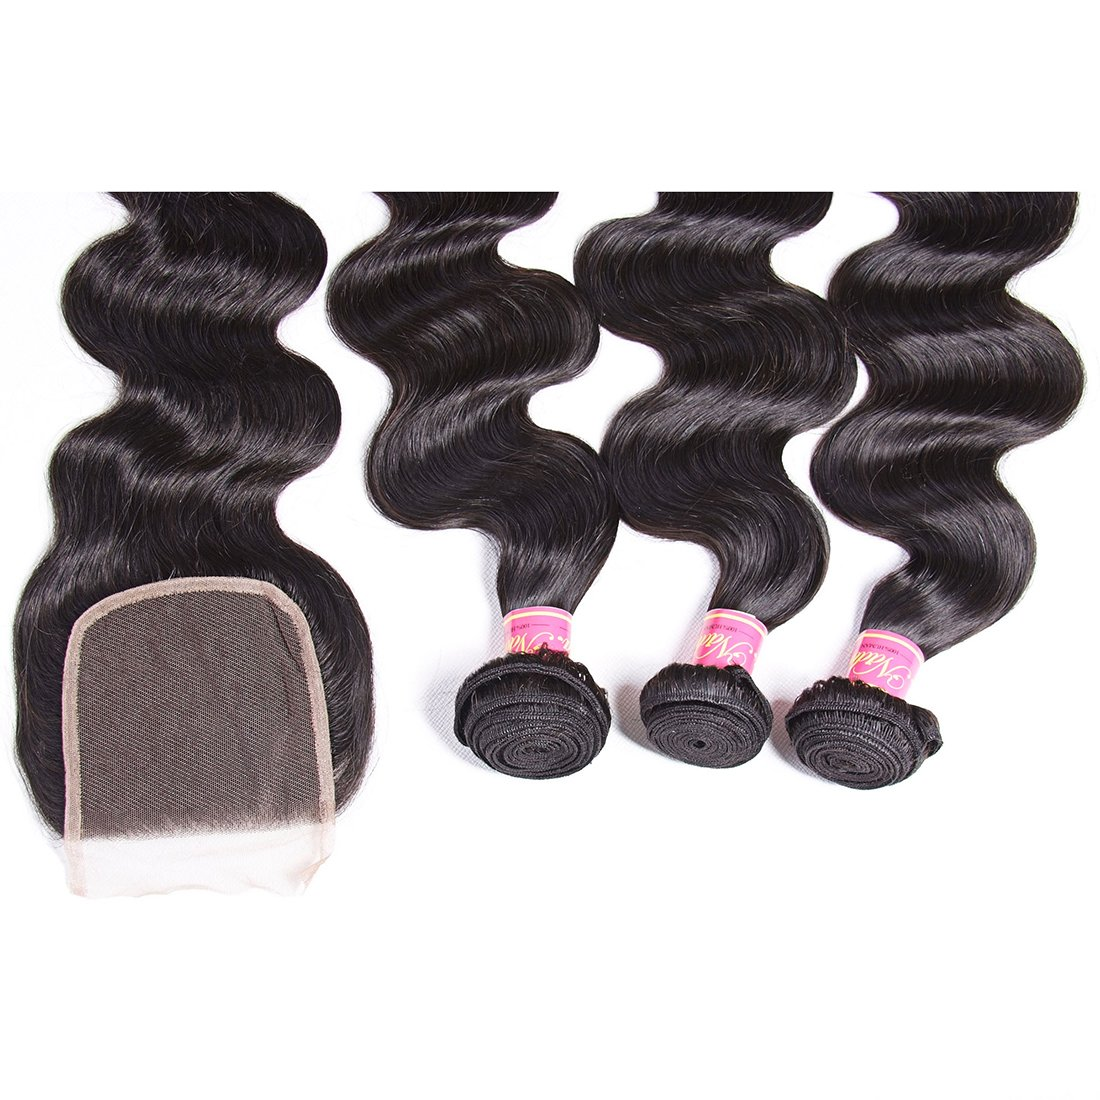 Nadula 6A Gorgeous Body Wave Brazilian Virgin Hair Free Part Lace Closure with 3 Bundles Unprocessed Remy Human Hair Weave Extensions Natural Color (18 20 22&16closure) by Nadula (Image #3)